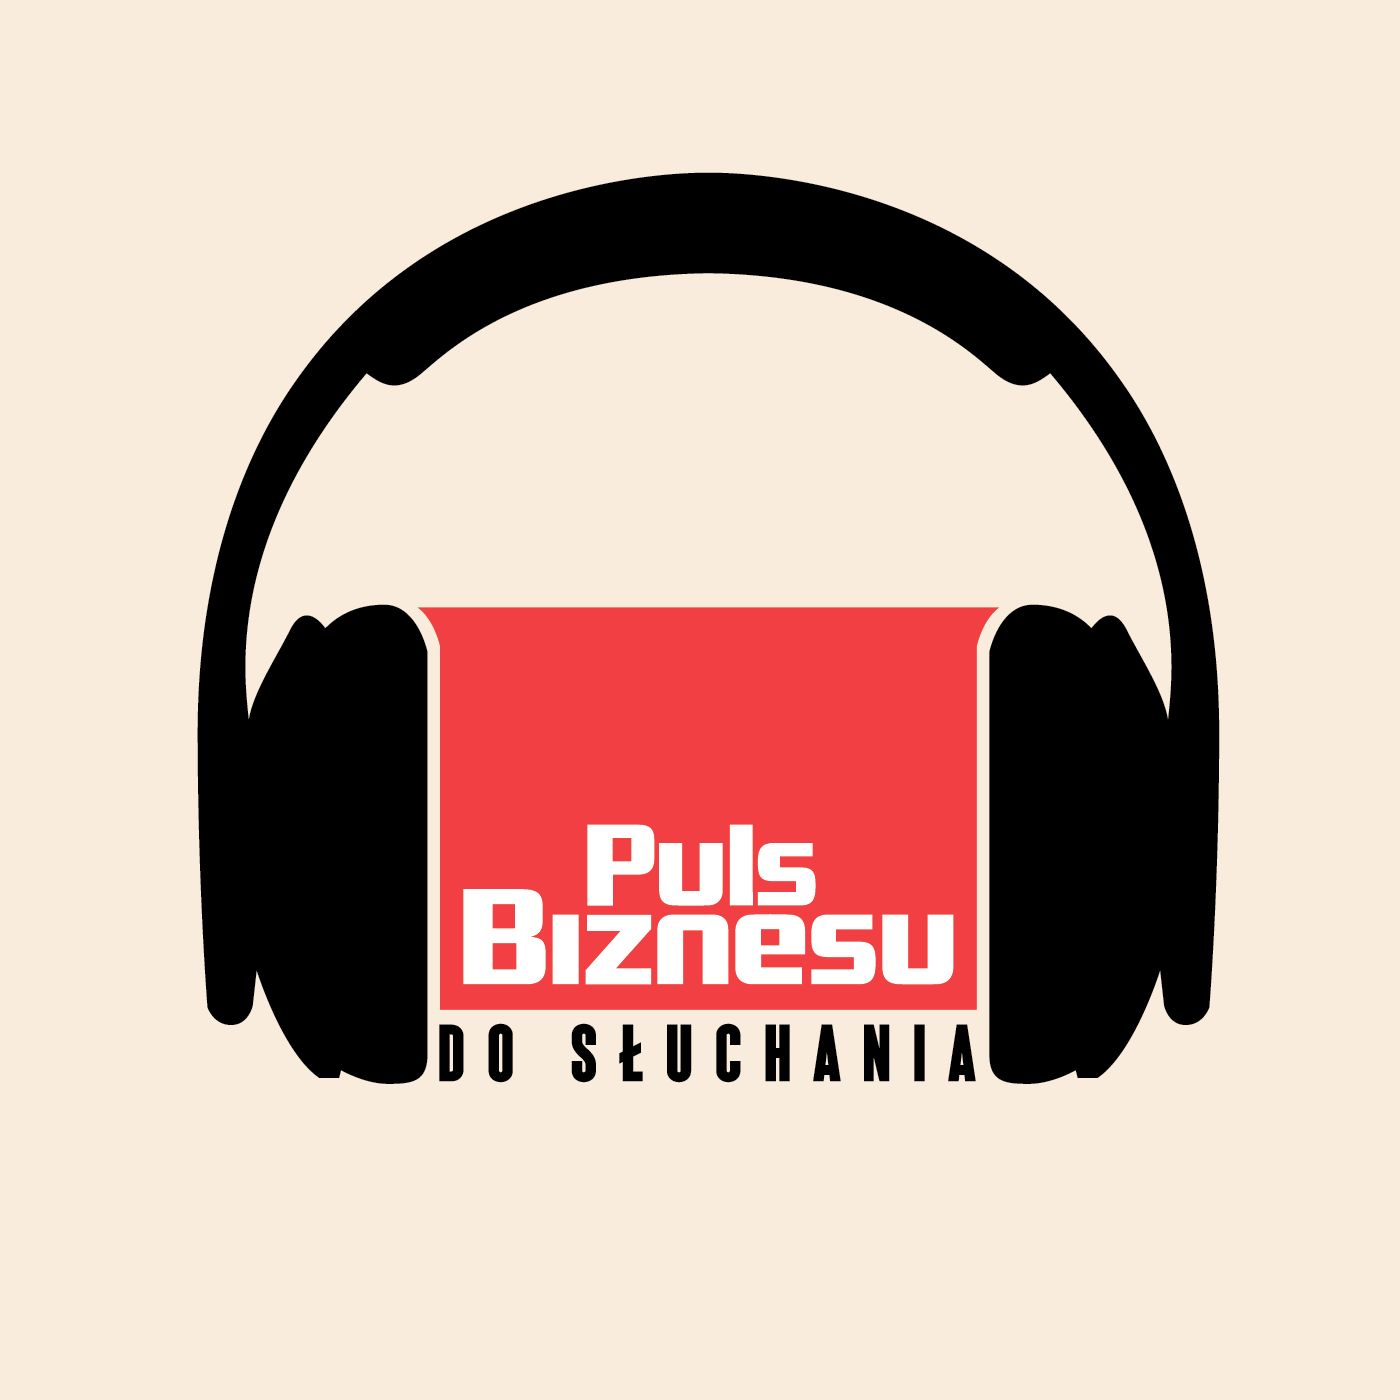 PULS BIZNESU do słuchania